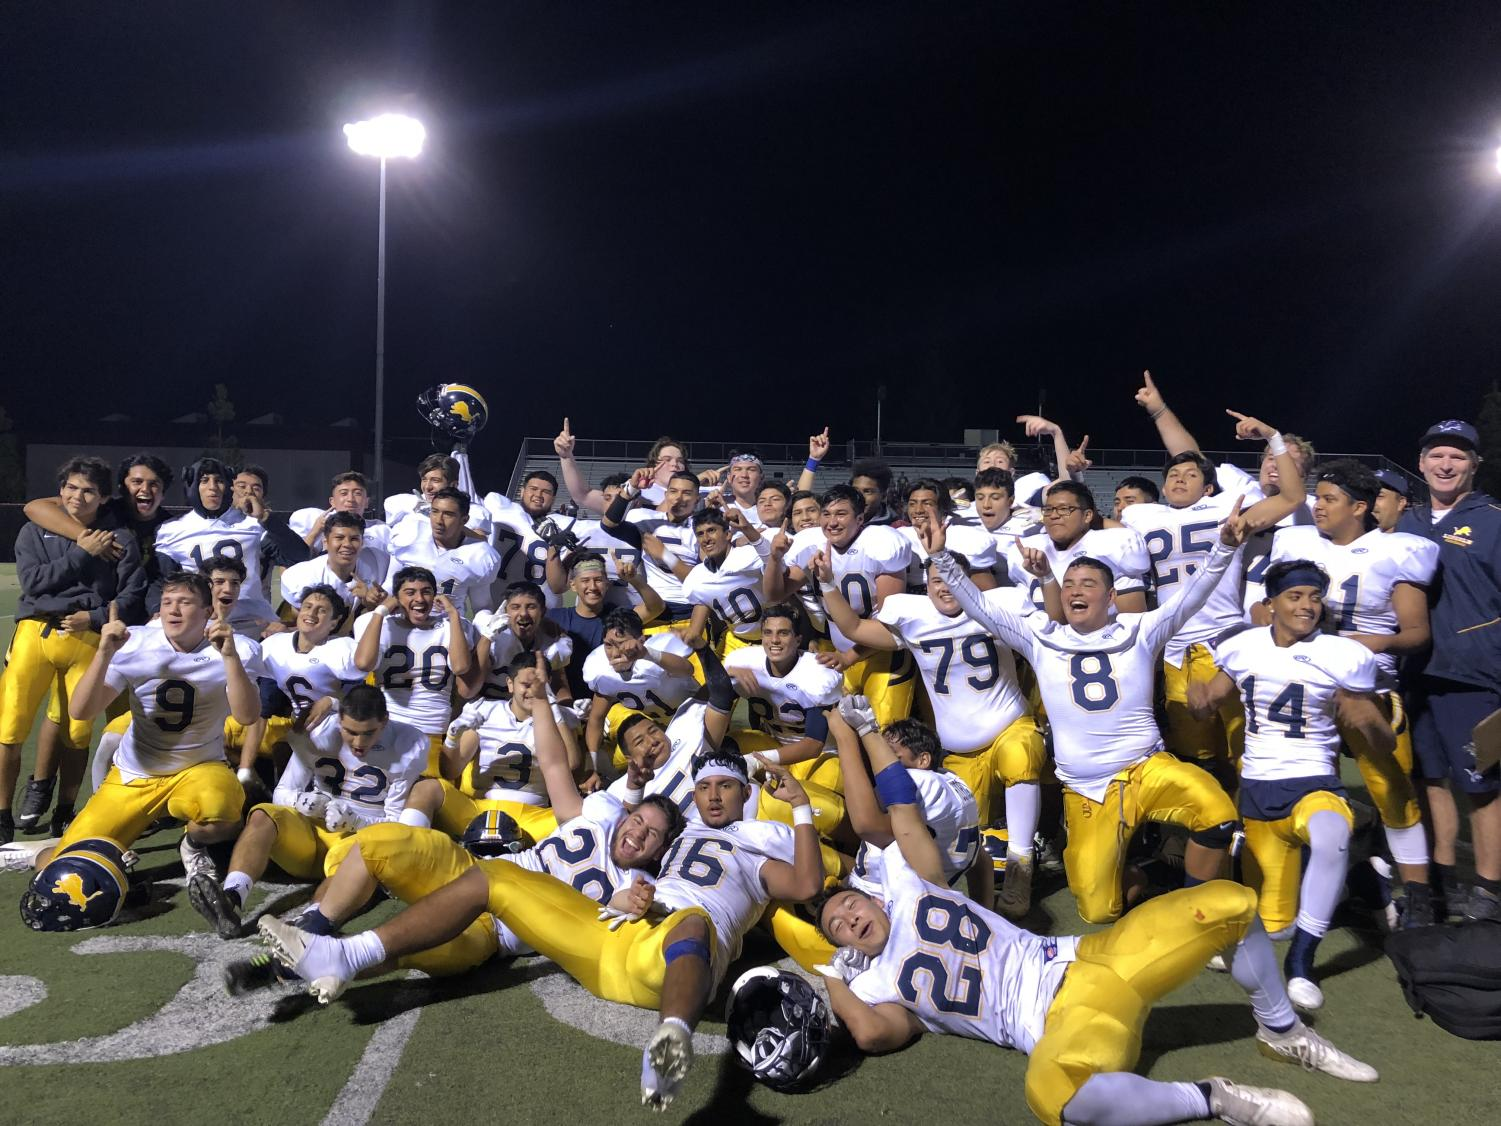 Lincoln Lions smiling for team picture. On Friday the 2nd Lincoln's Football varsity team went up against Piedmont Hills . The final score was Pirates 21- Lions 48 (Anastasia Cervantes / Lincoln Lion Tales)